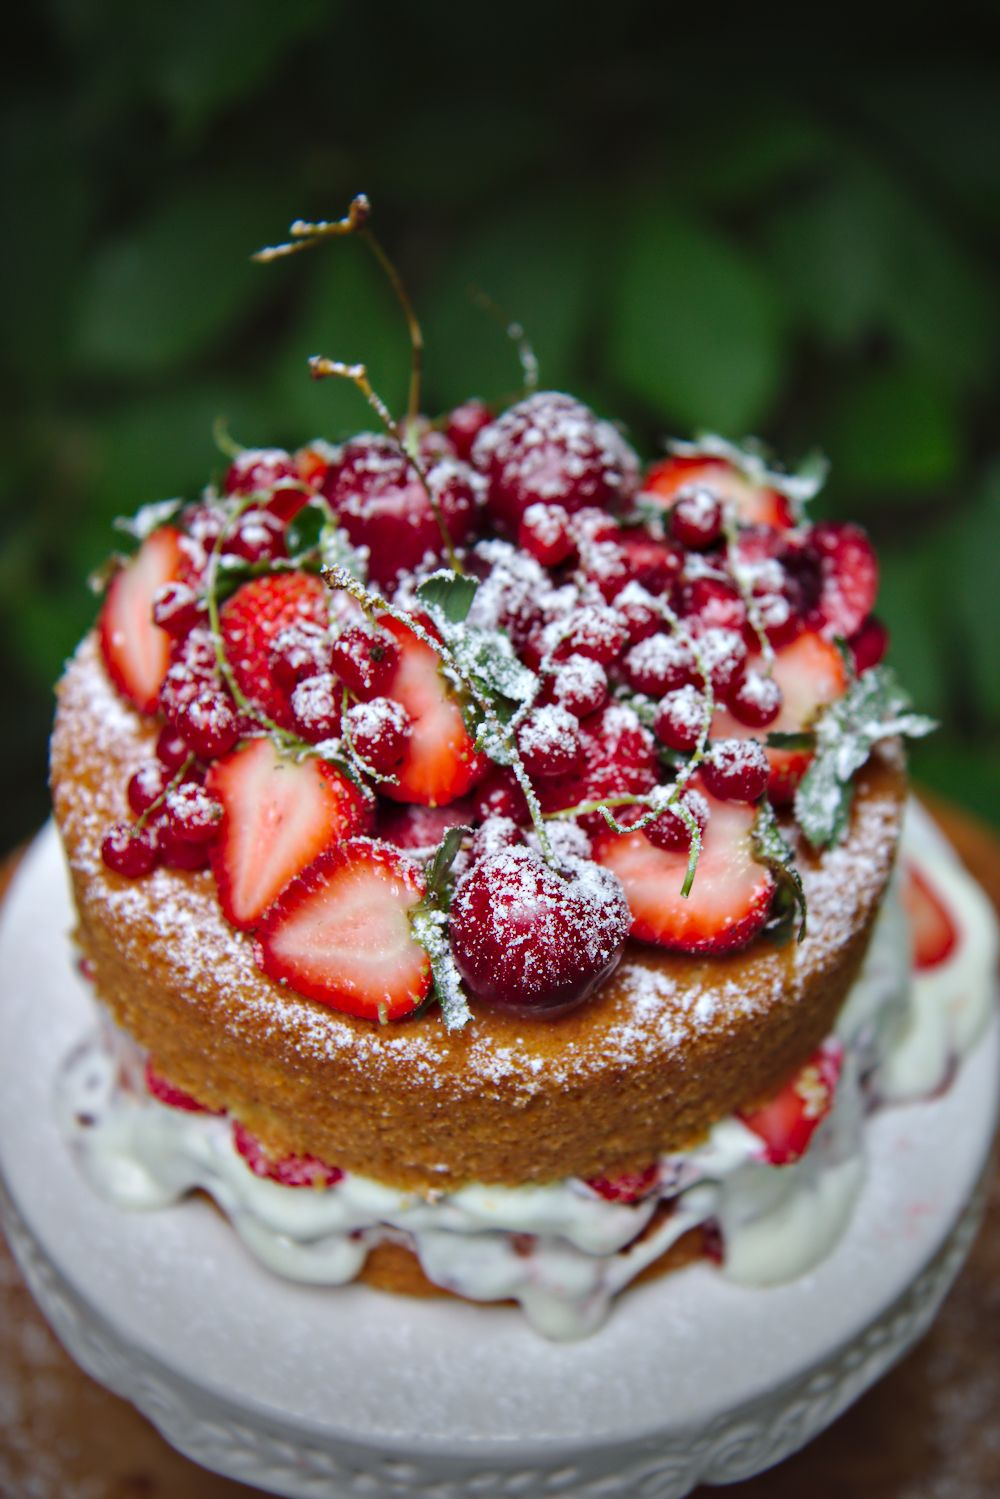 6-Inch Victoria Sponge Layer Cake topped with gorgeous fresh red fruits